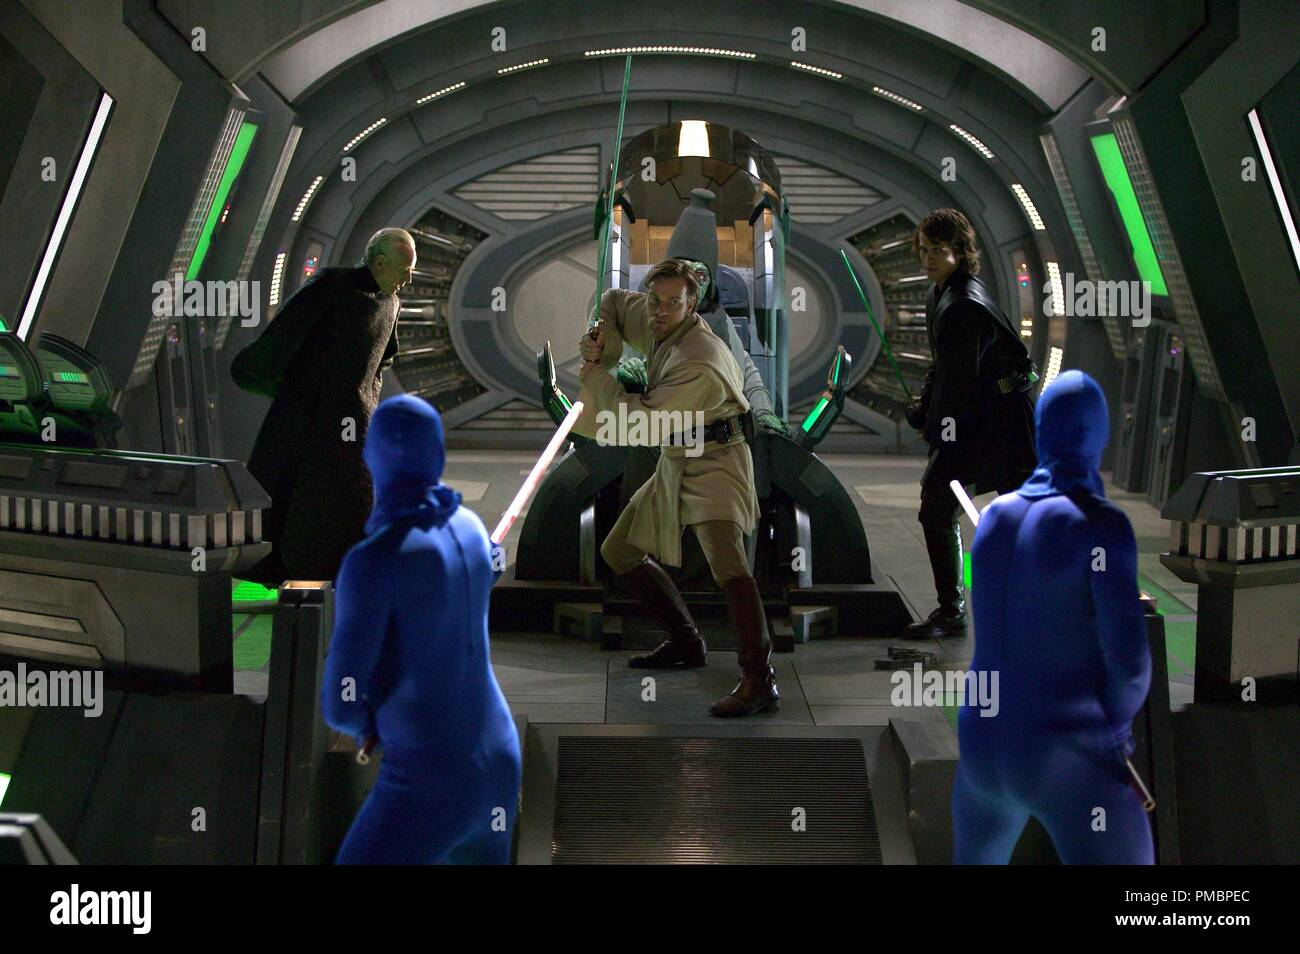 Ewan Mcgregor And Hayden Christensen Battle Magnaguards In Star Wars Episode Iii Revenge Of The Sith 2005 File Reference 32603 463tha Stock Photo Alamy